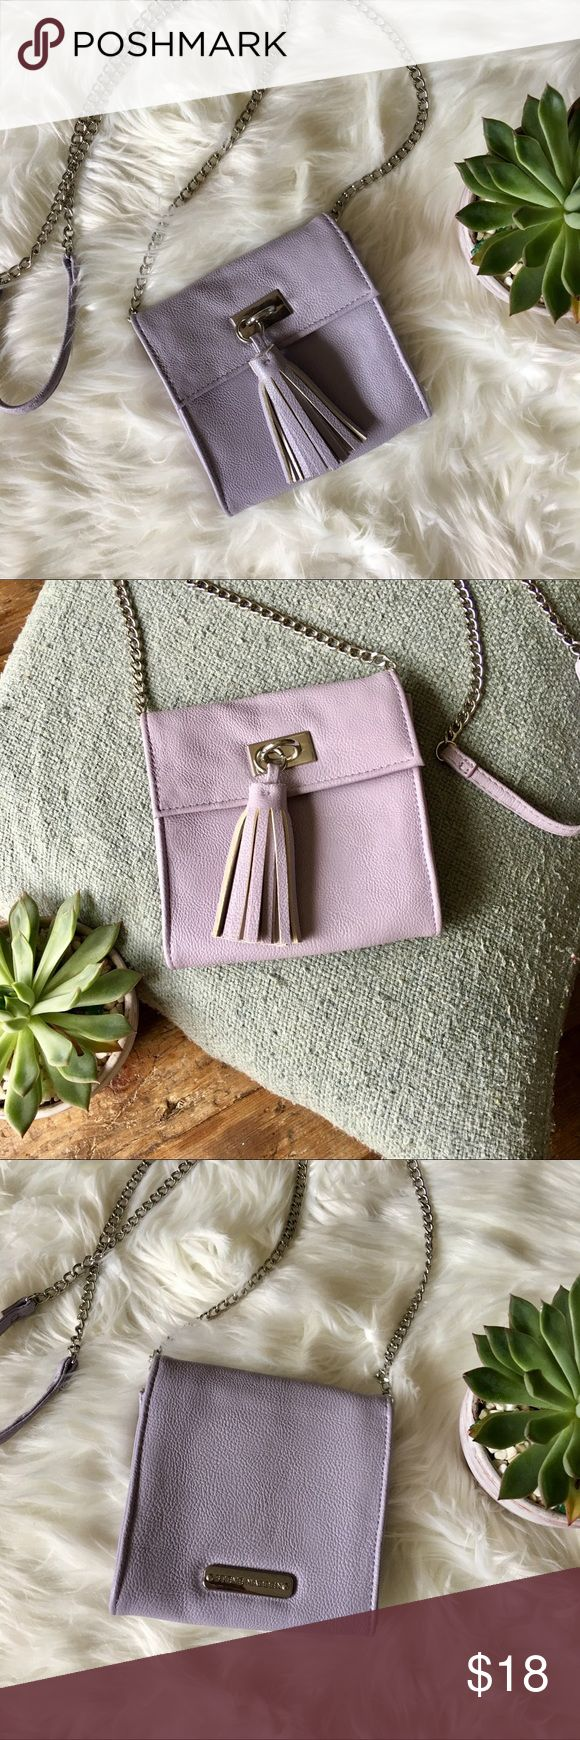 """Steve Madden Lavender Mini Crossbody Purse The palest of purples, adding just the right amount of zest to your attire 💜 Mini bag with pouches and zippers inside, a single tassel on the front magnet closure, chain strap with the same leather-like material accenting the ends of the chain near the shoulder. Measures about 6"""" x 5 1/2"""", with the chain extending about 26"""" from the body of the purse 👛 Steve Madden Bags Mini Bags"""